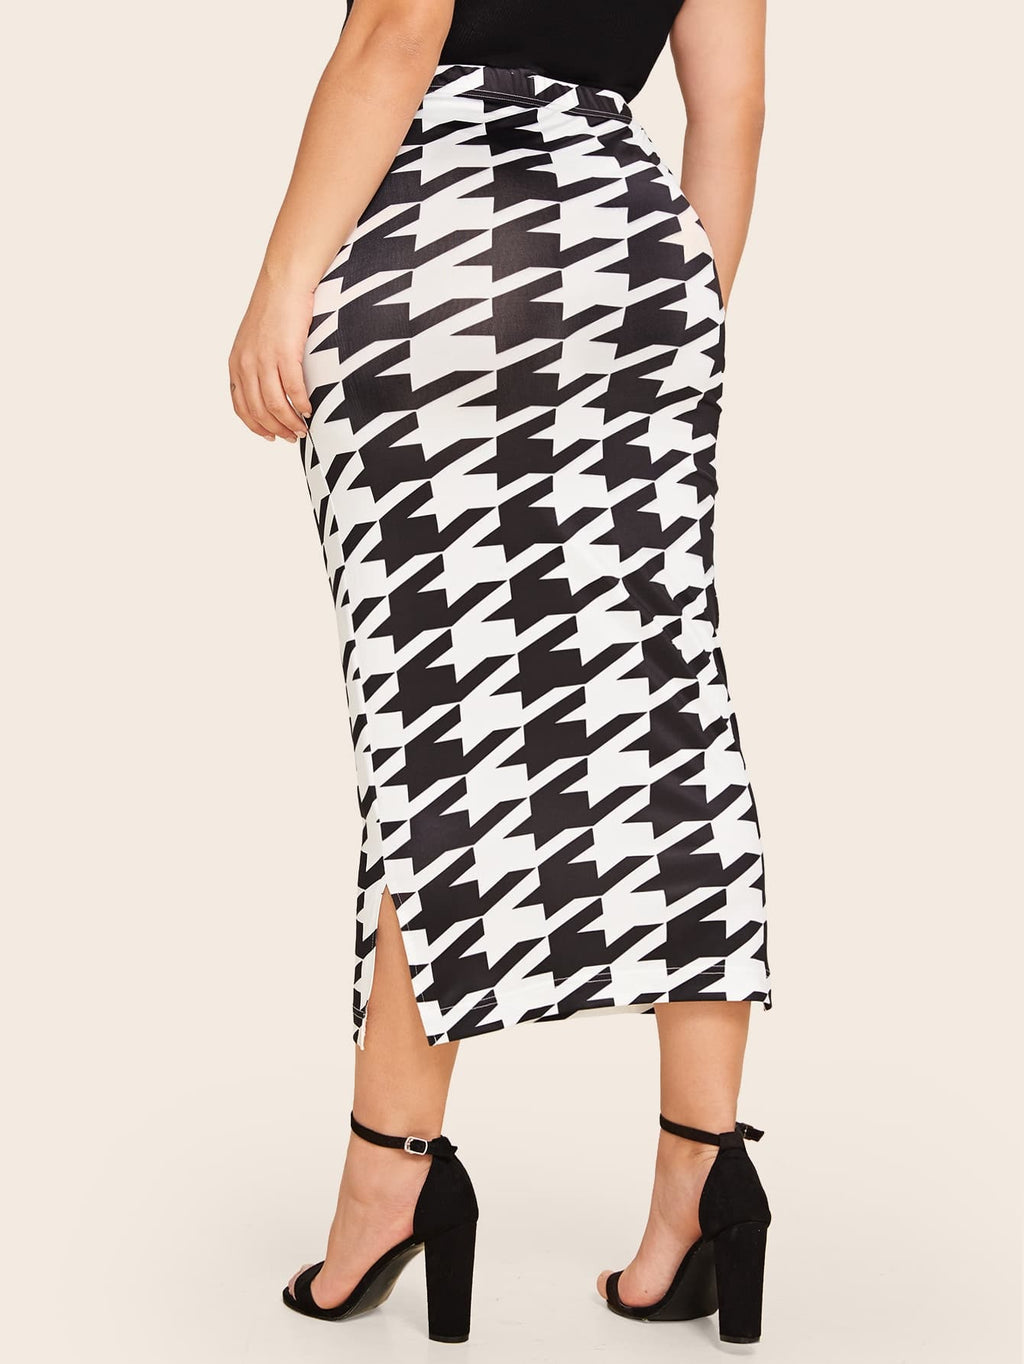 Plus Size Houndstooth Bodycon Pencil Skirt